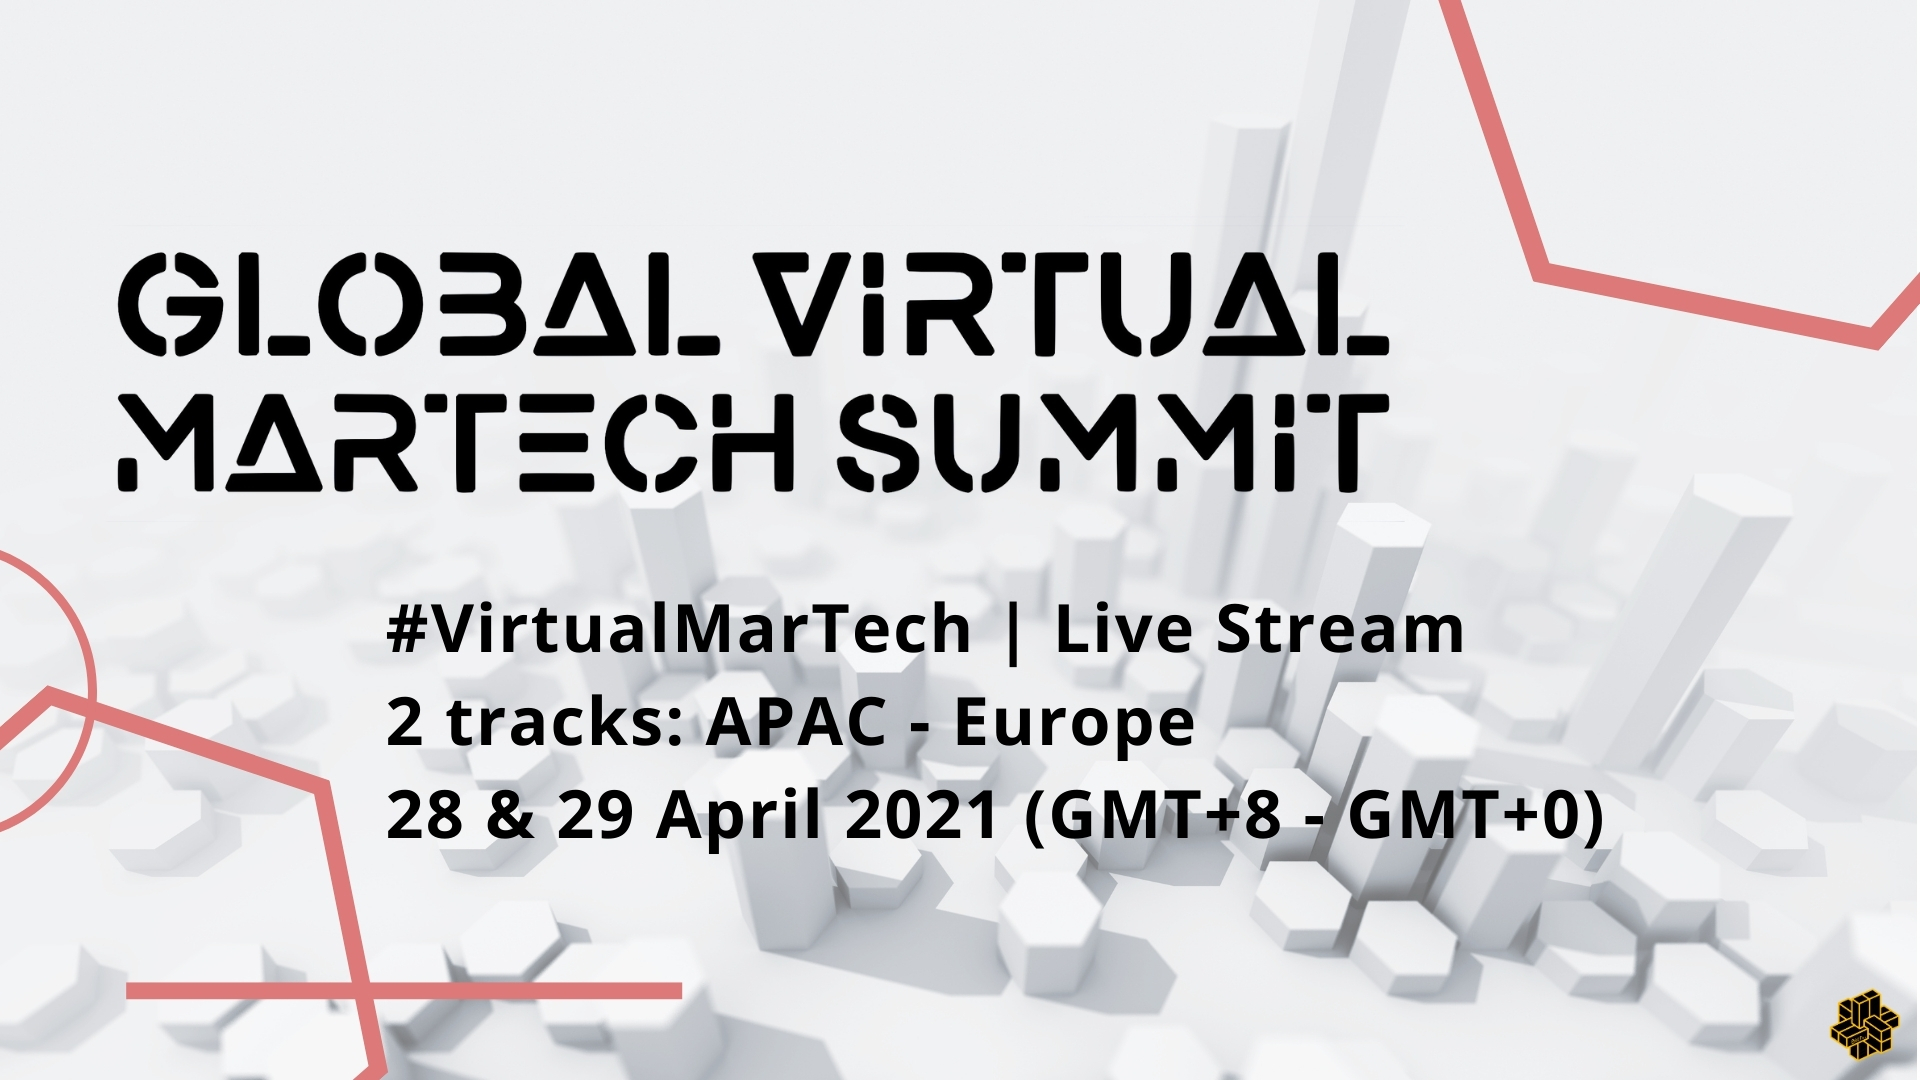 Global Virtual MarTech Summit Europe organized by BEETc